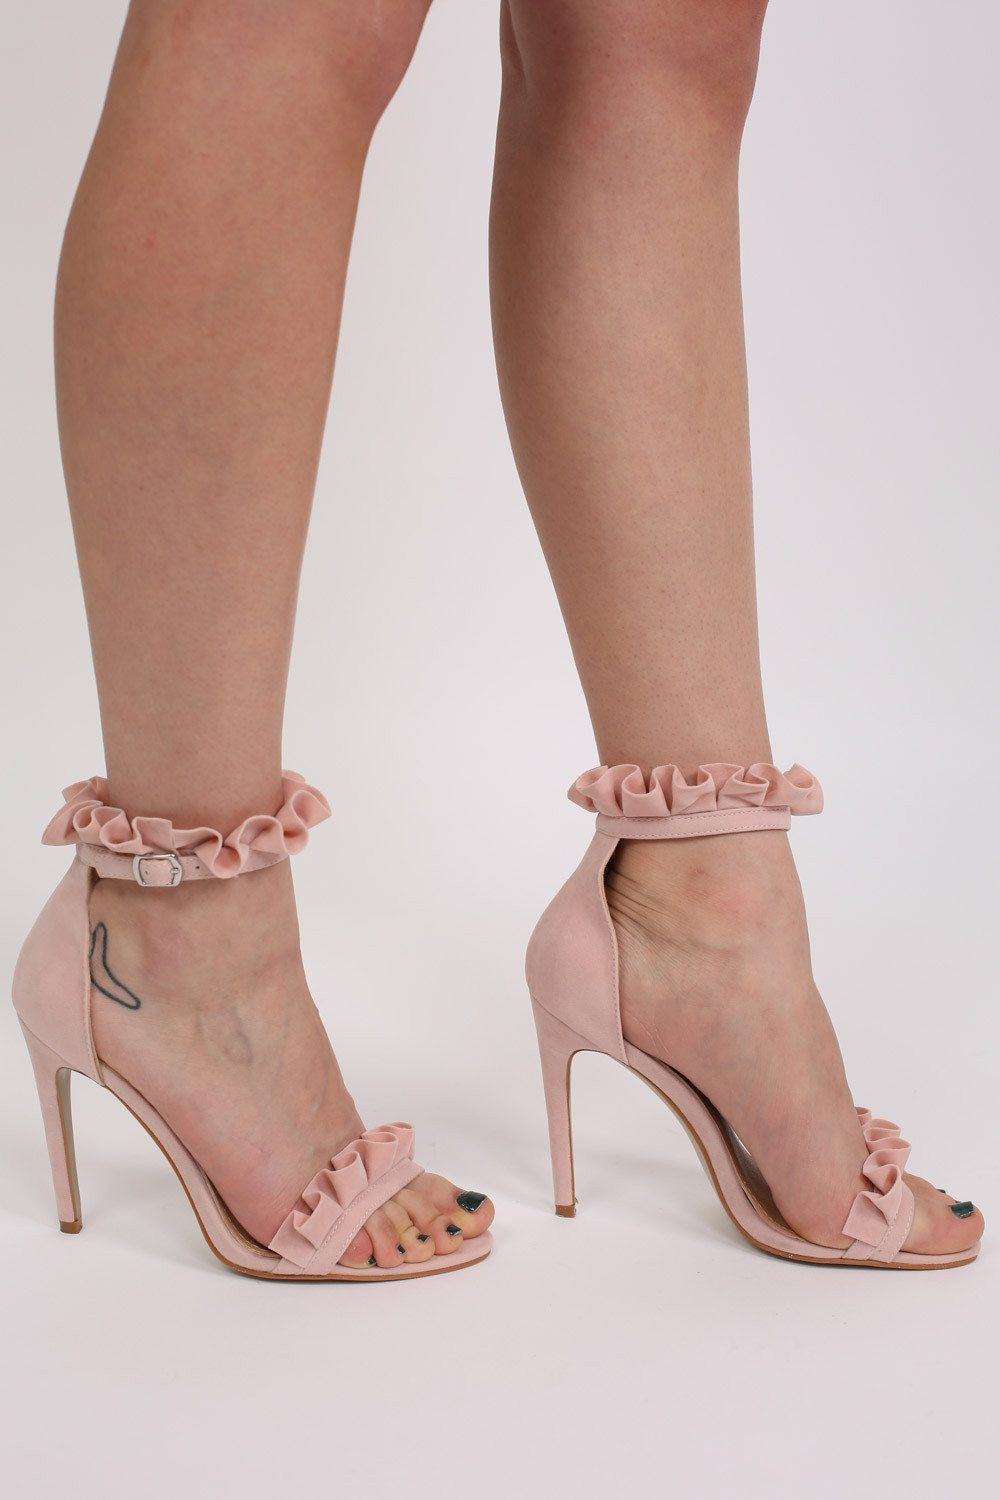 a719929b9ce6 Frill Detail Strappy High Heel Sandals in Pale Pink – pilot